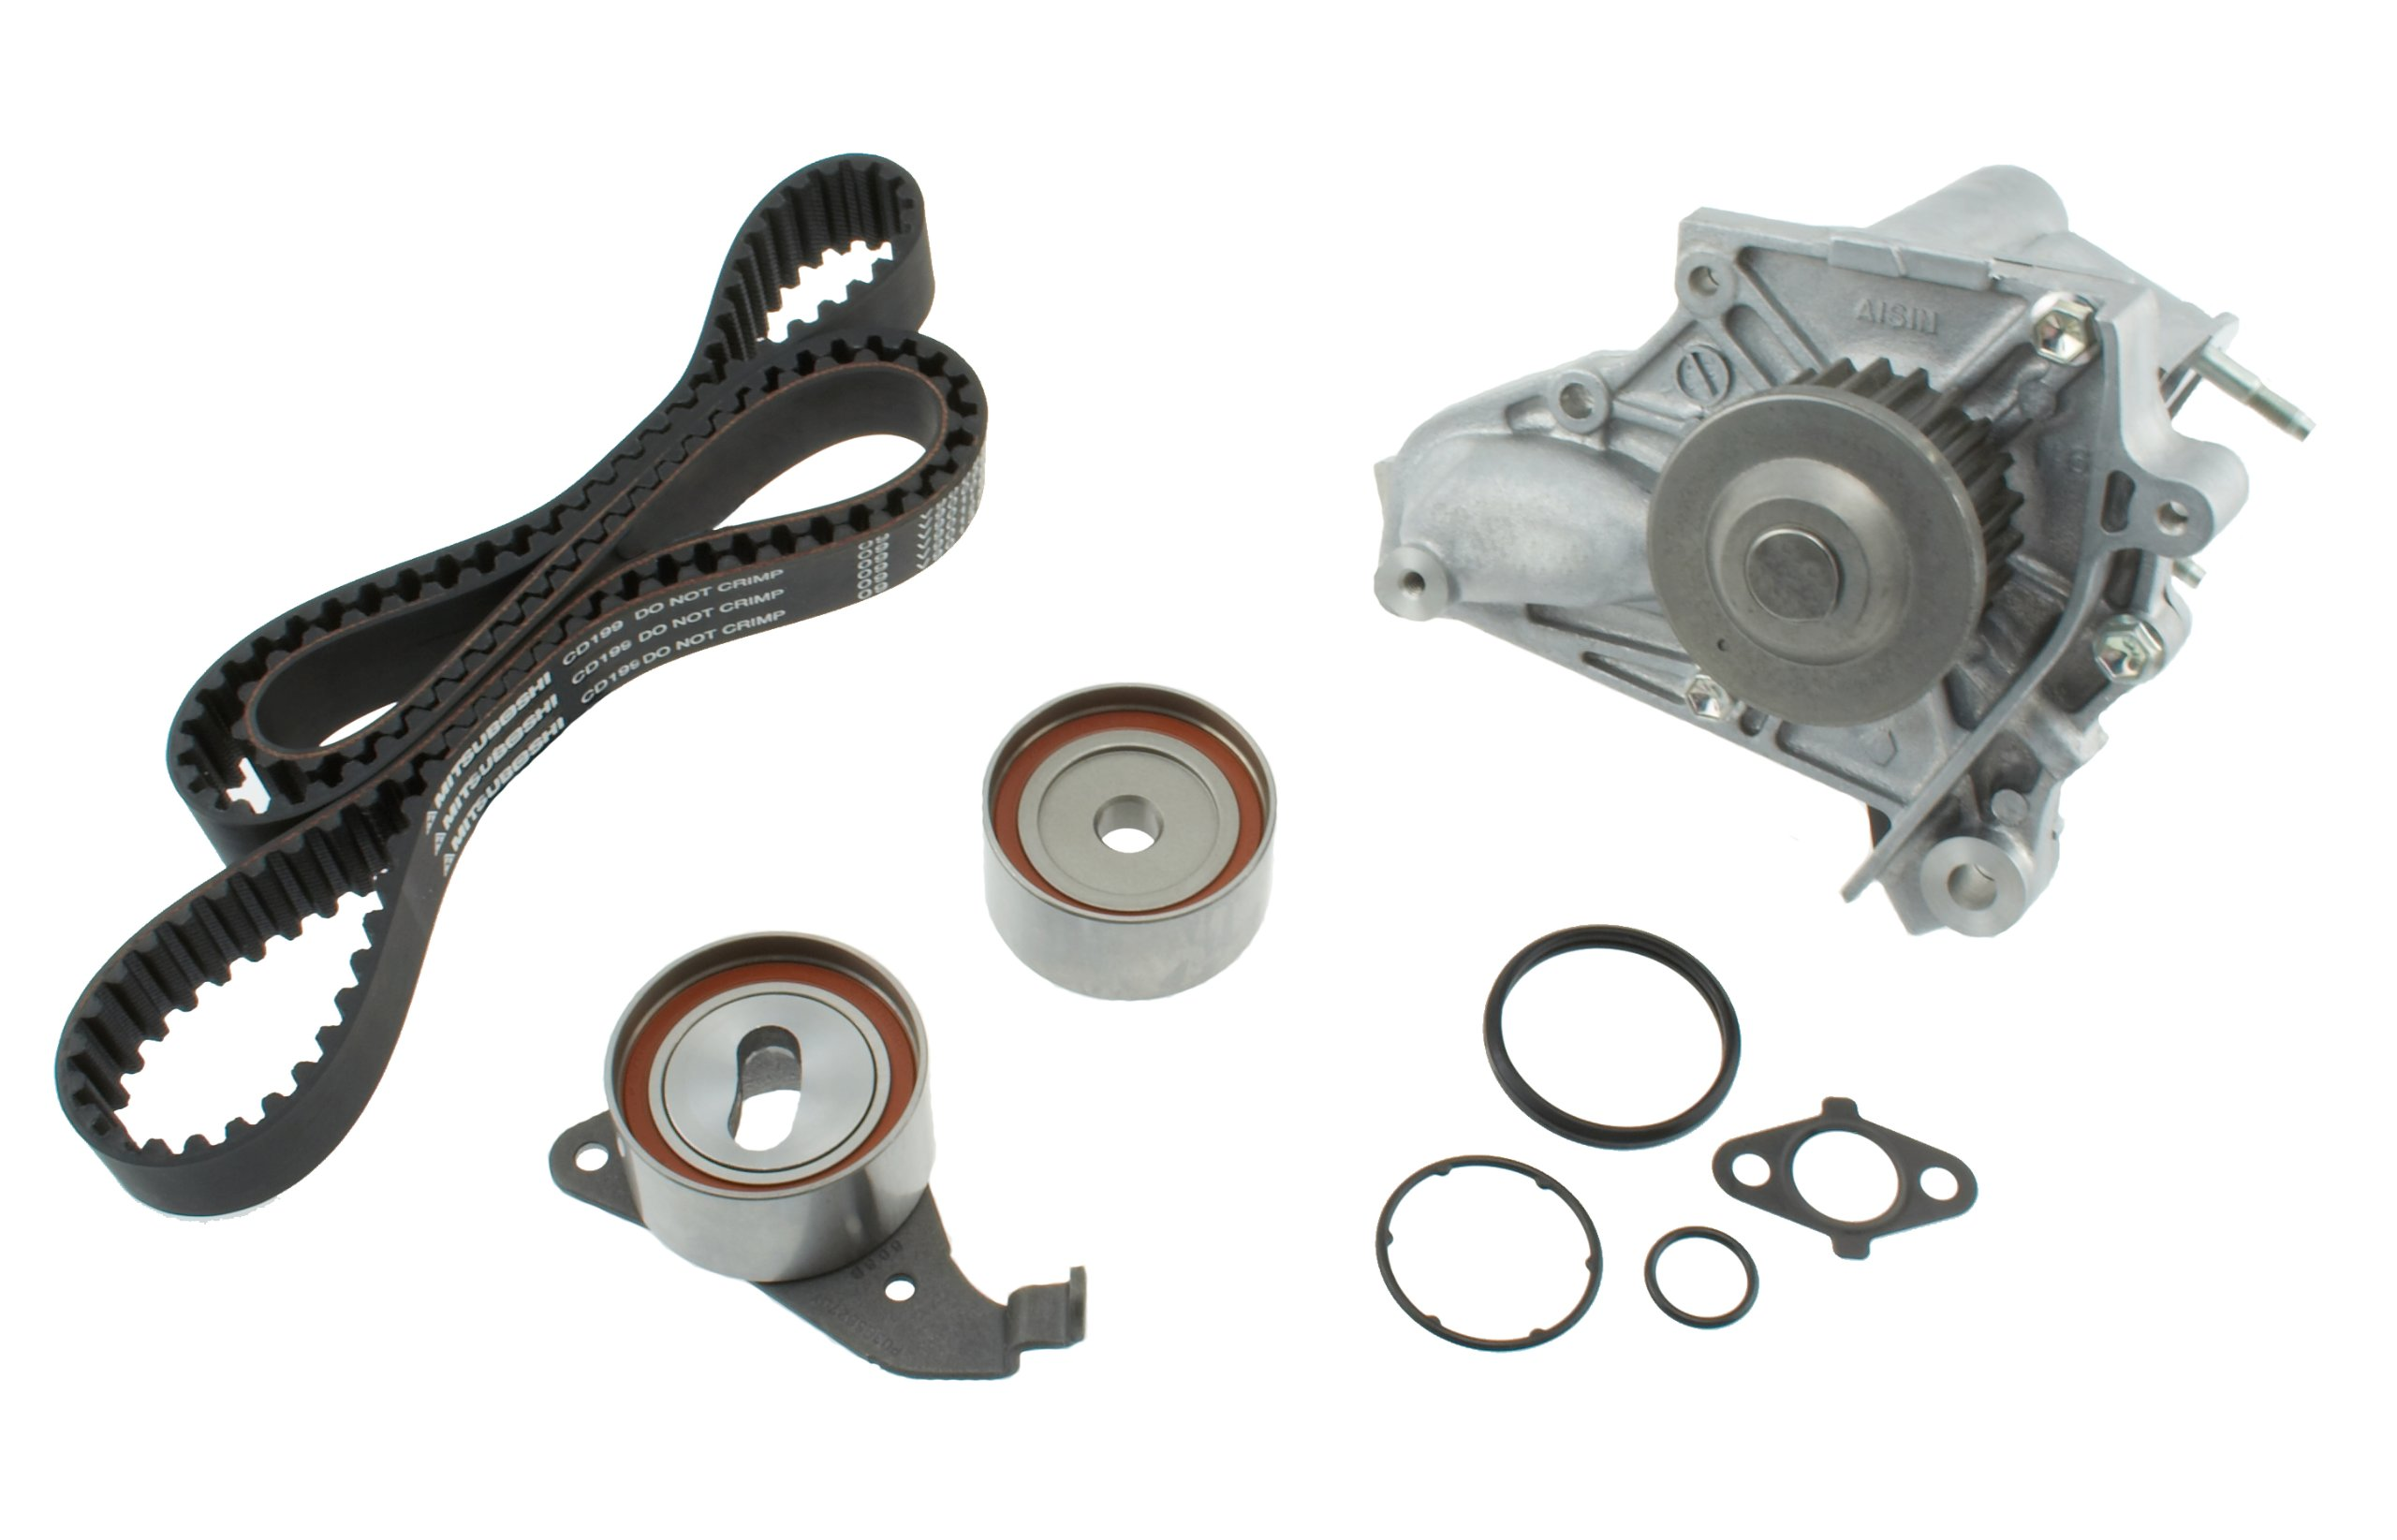 Aisin Tkt 002 Engine Timing Belt Kit With Water Pump 05 Mazda 6 Automotive